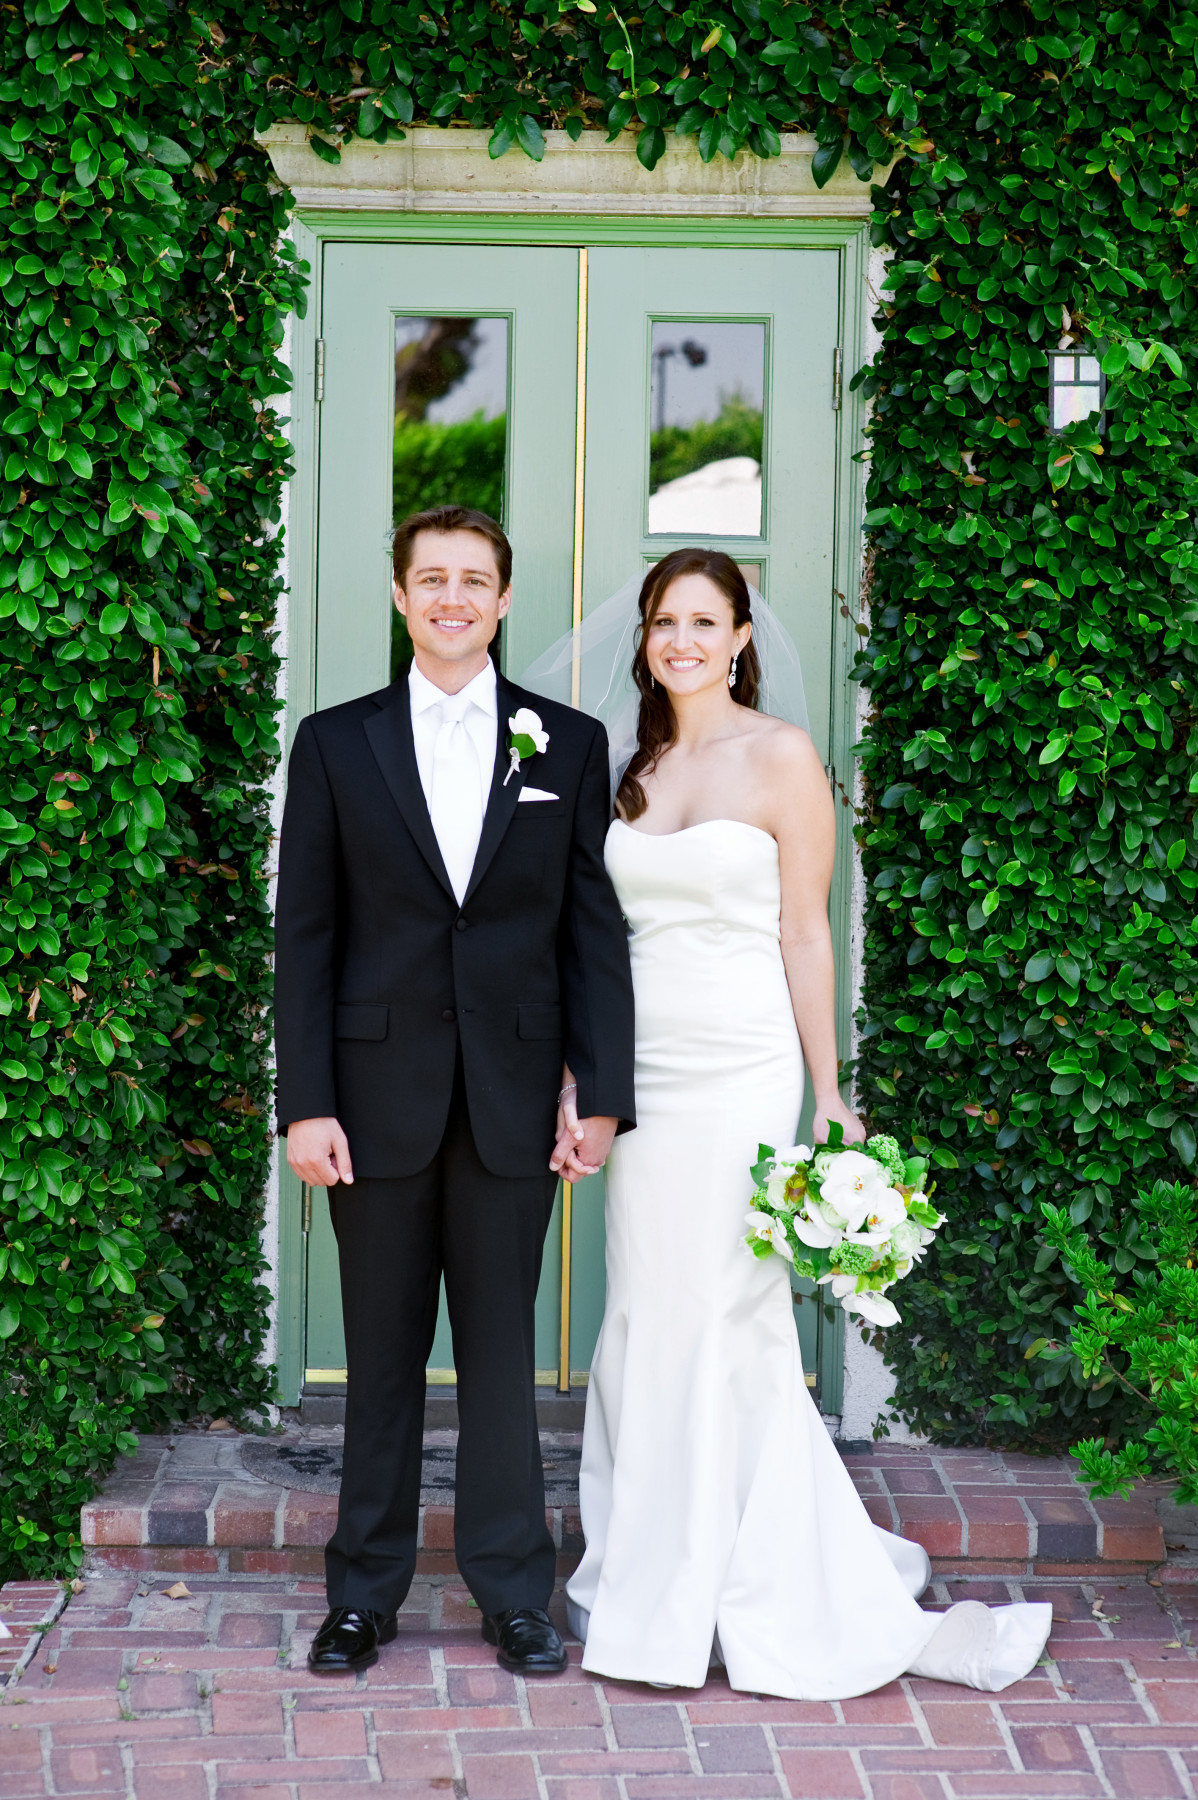 How Much Does An Estate Wedding Cost